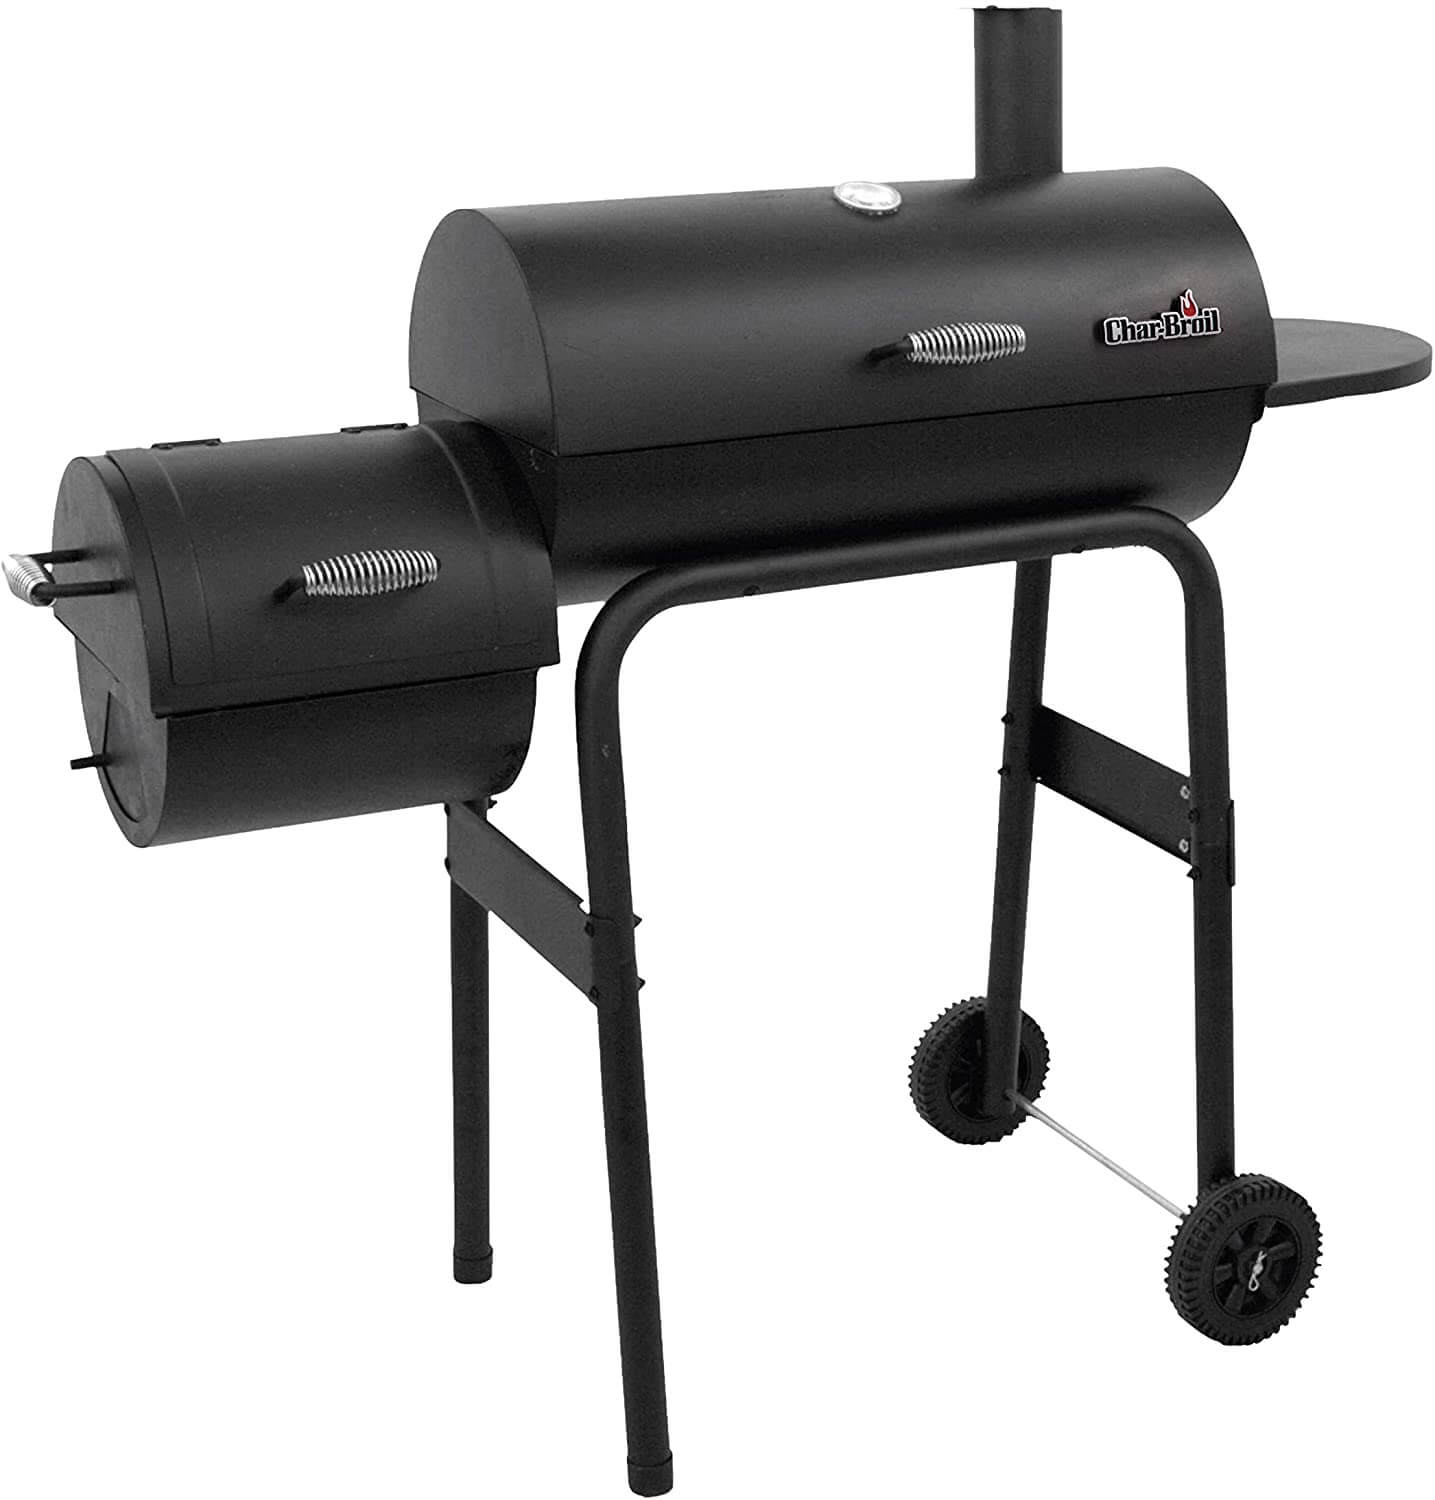 Char-Broil 12201570-A1 Offset Smoker